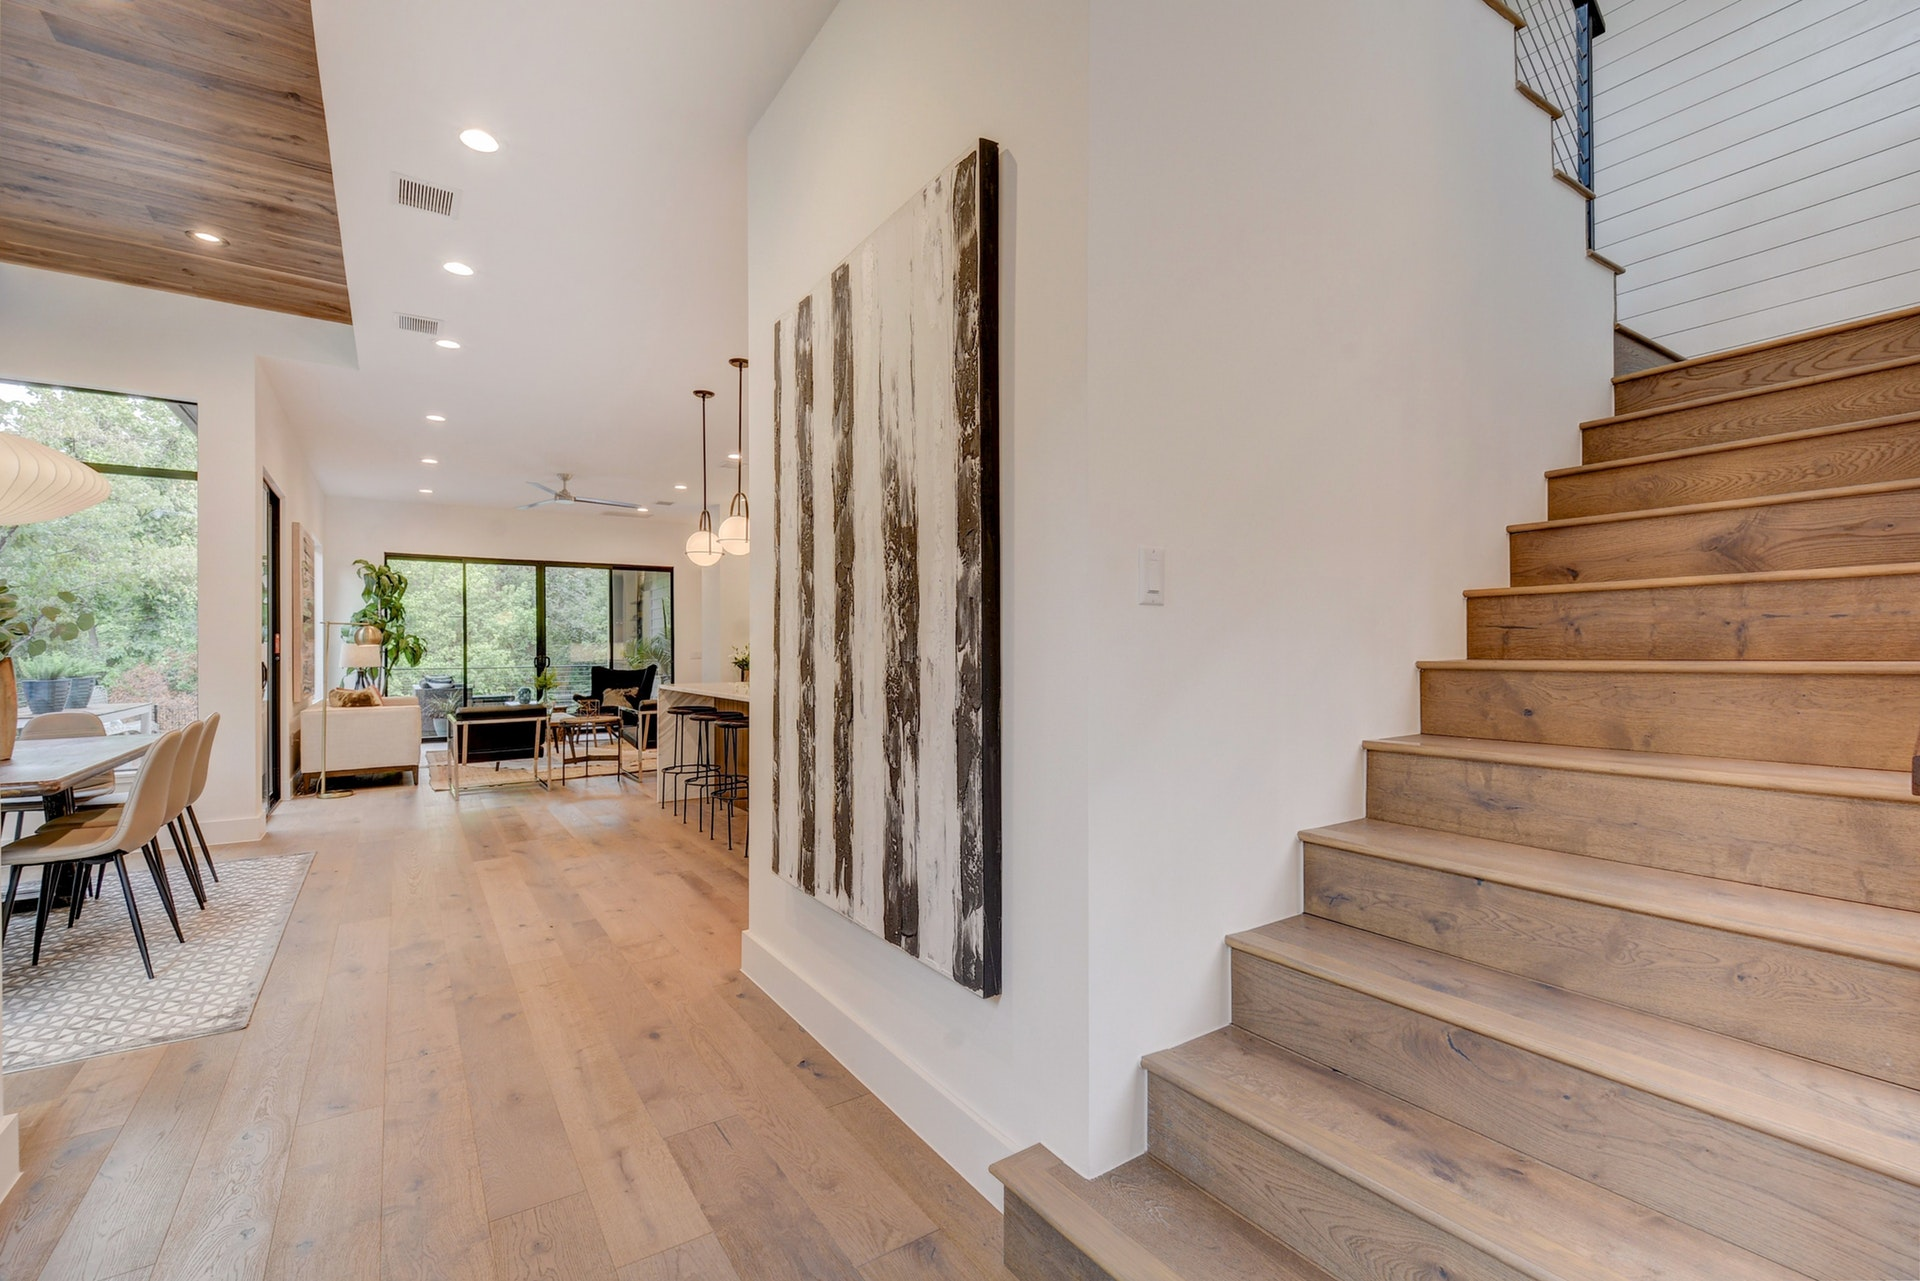 Another view of the impressive foyer and modern stairwell with shiplap at the landing.